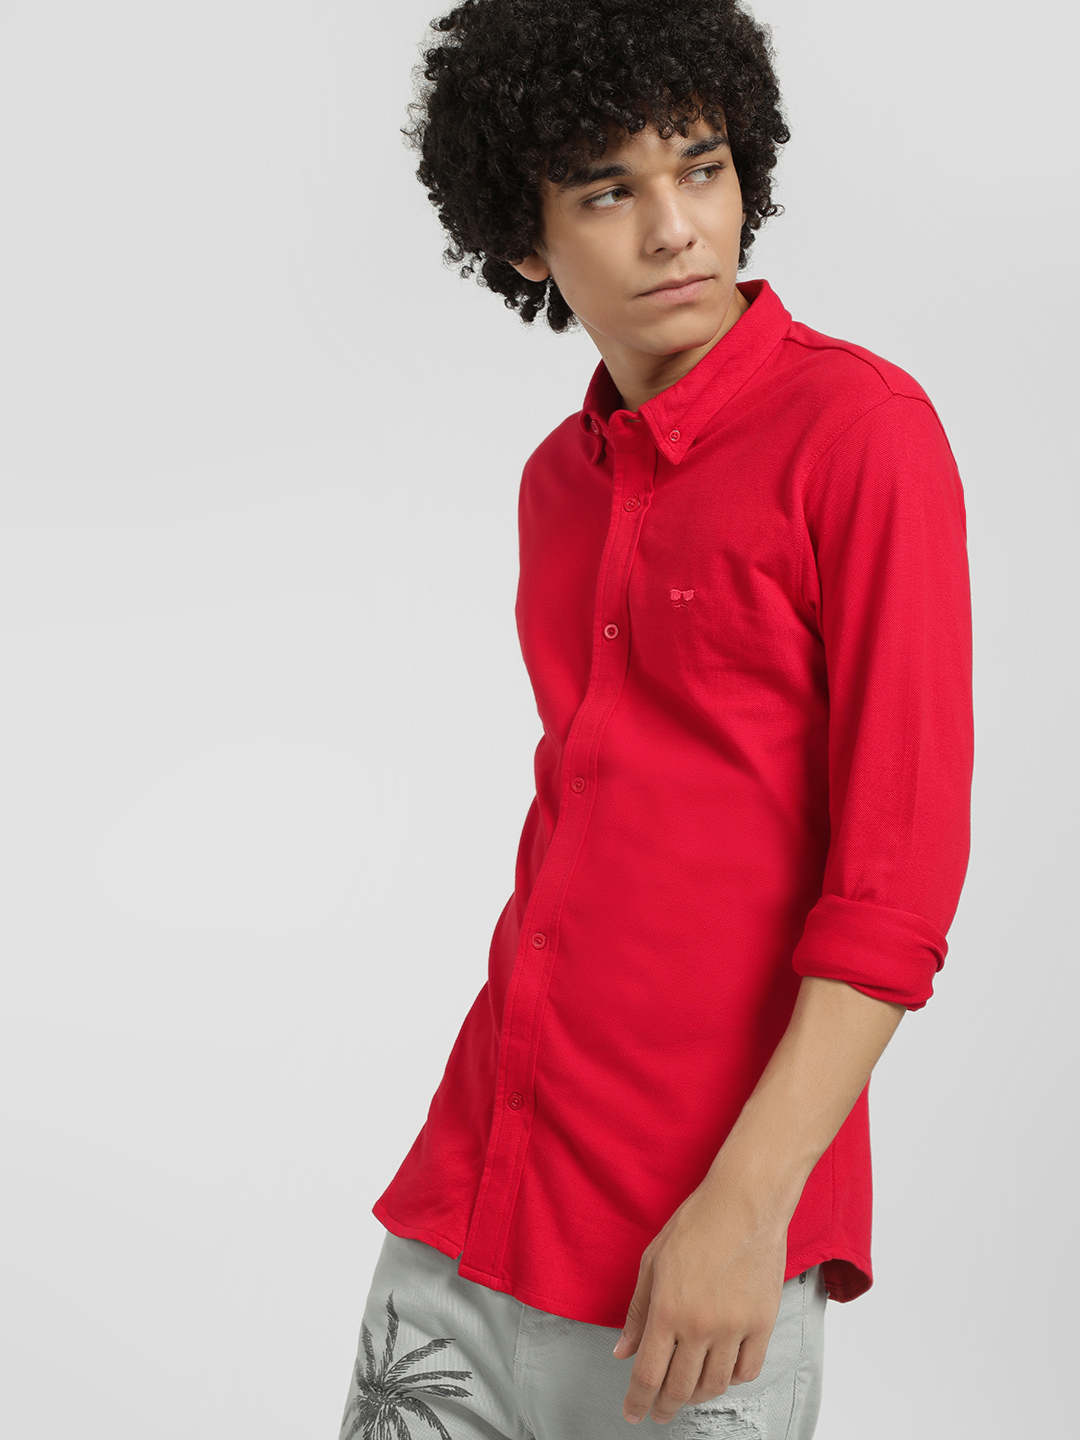 Garcon Red Knitted Pique Casual Shirt 1